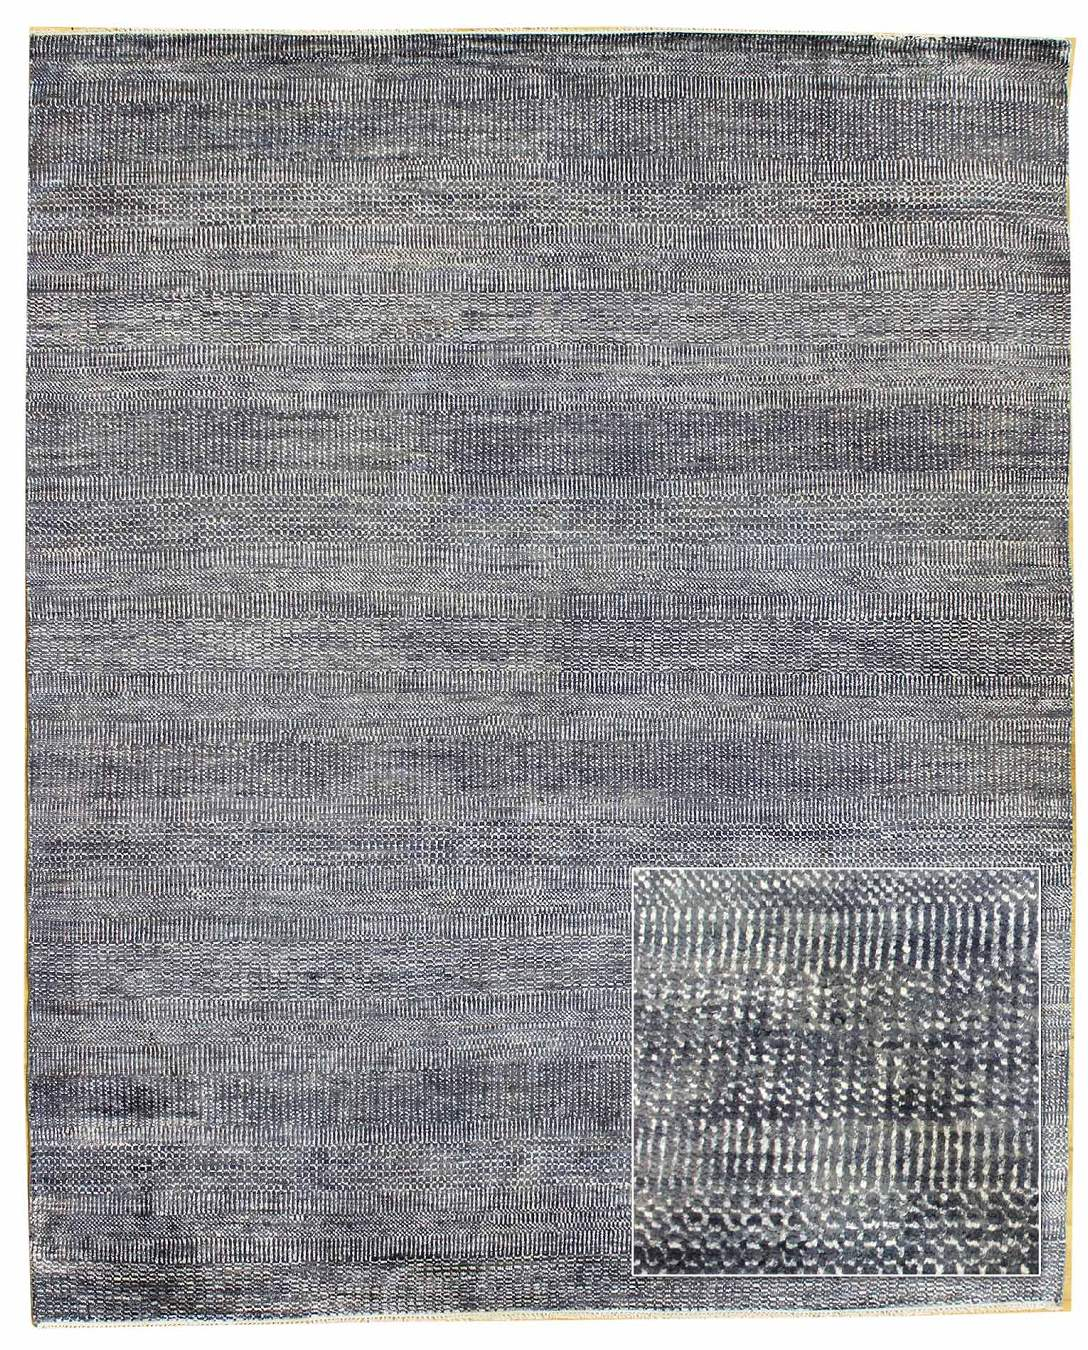 Illusion Pattern Handwoven Contemporary Rug